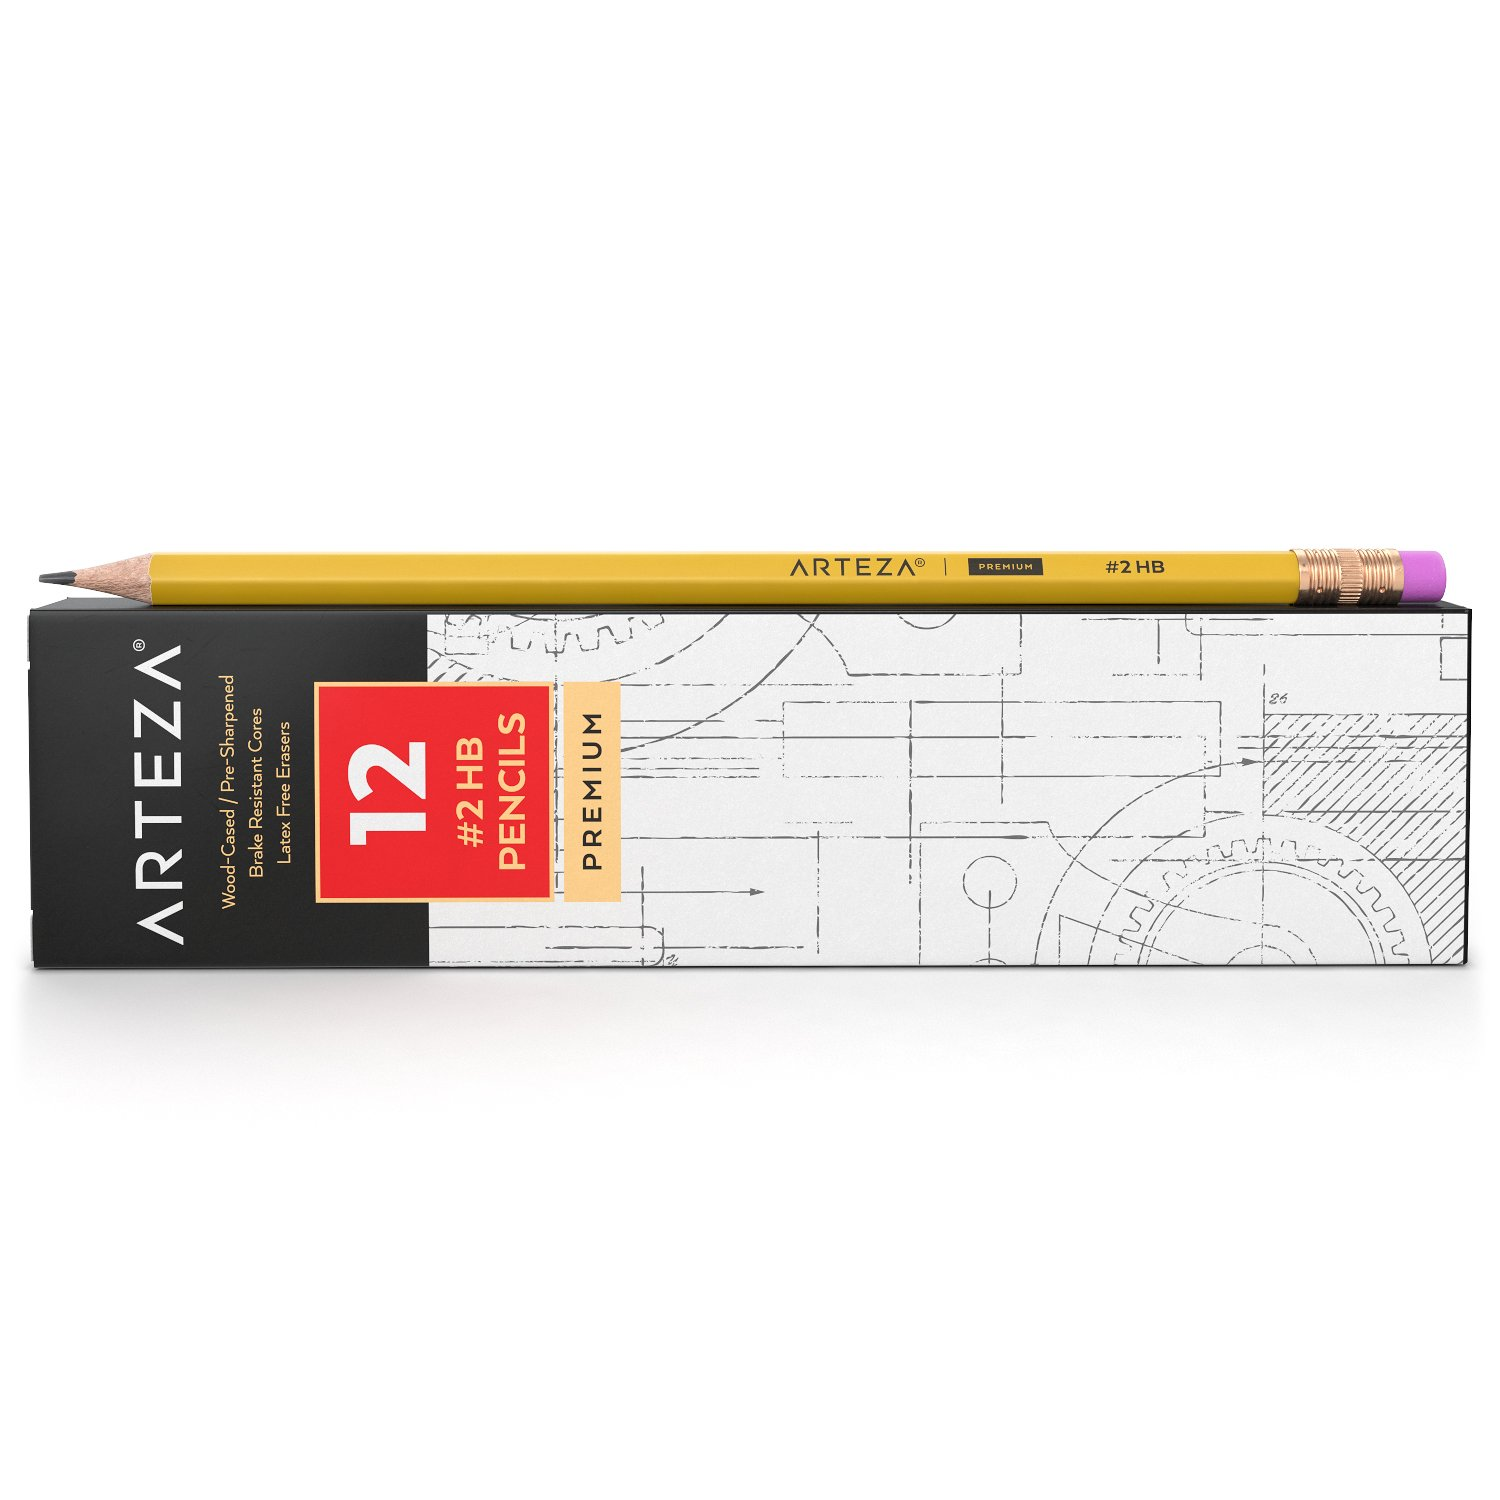 ARTEZA #2 HB Wood Cased Graphite Pencils Pack of 12 Drawing and Sketching Bulk School Pre-Sharpened with Latex Free Erasers Office Bulk pack Smooth write for Exams